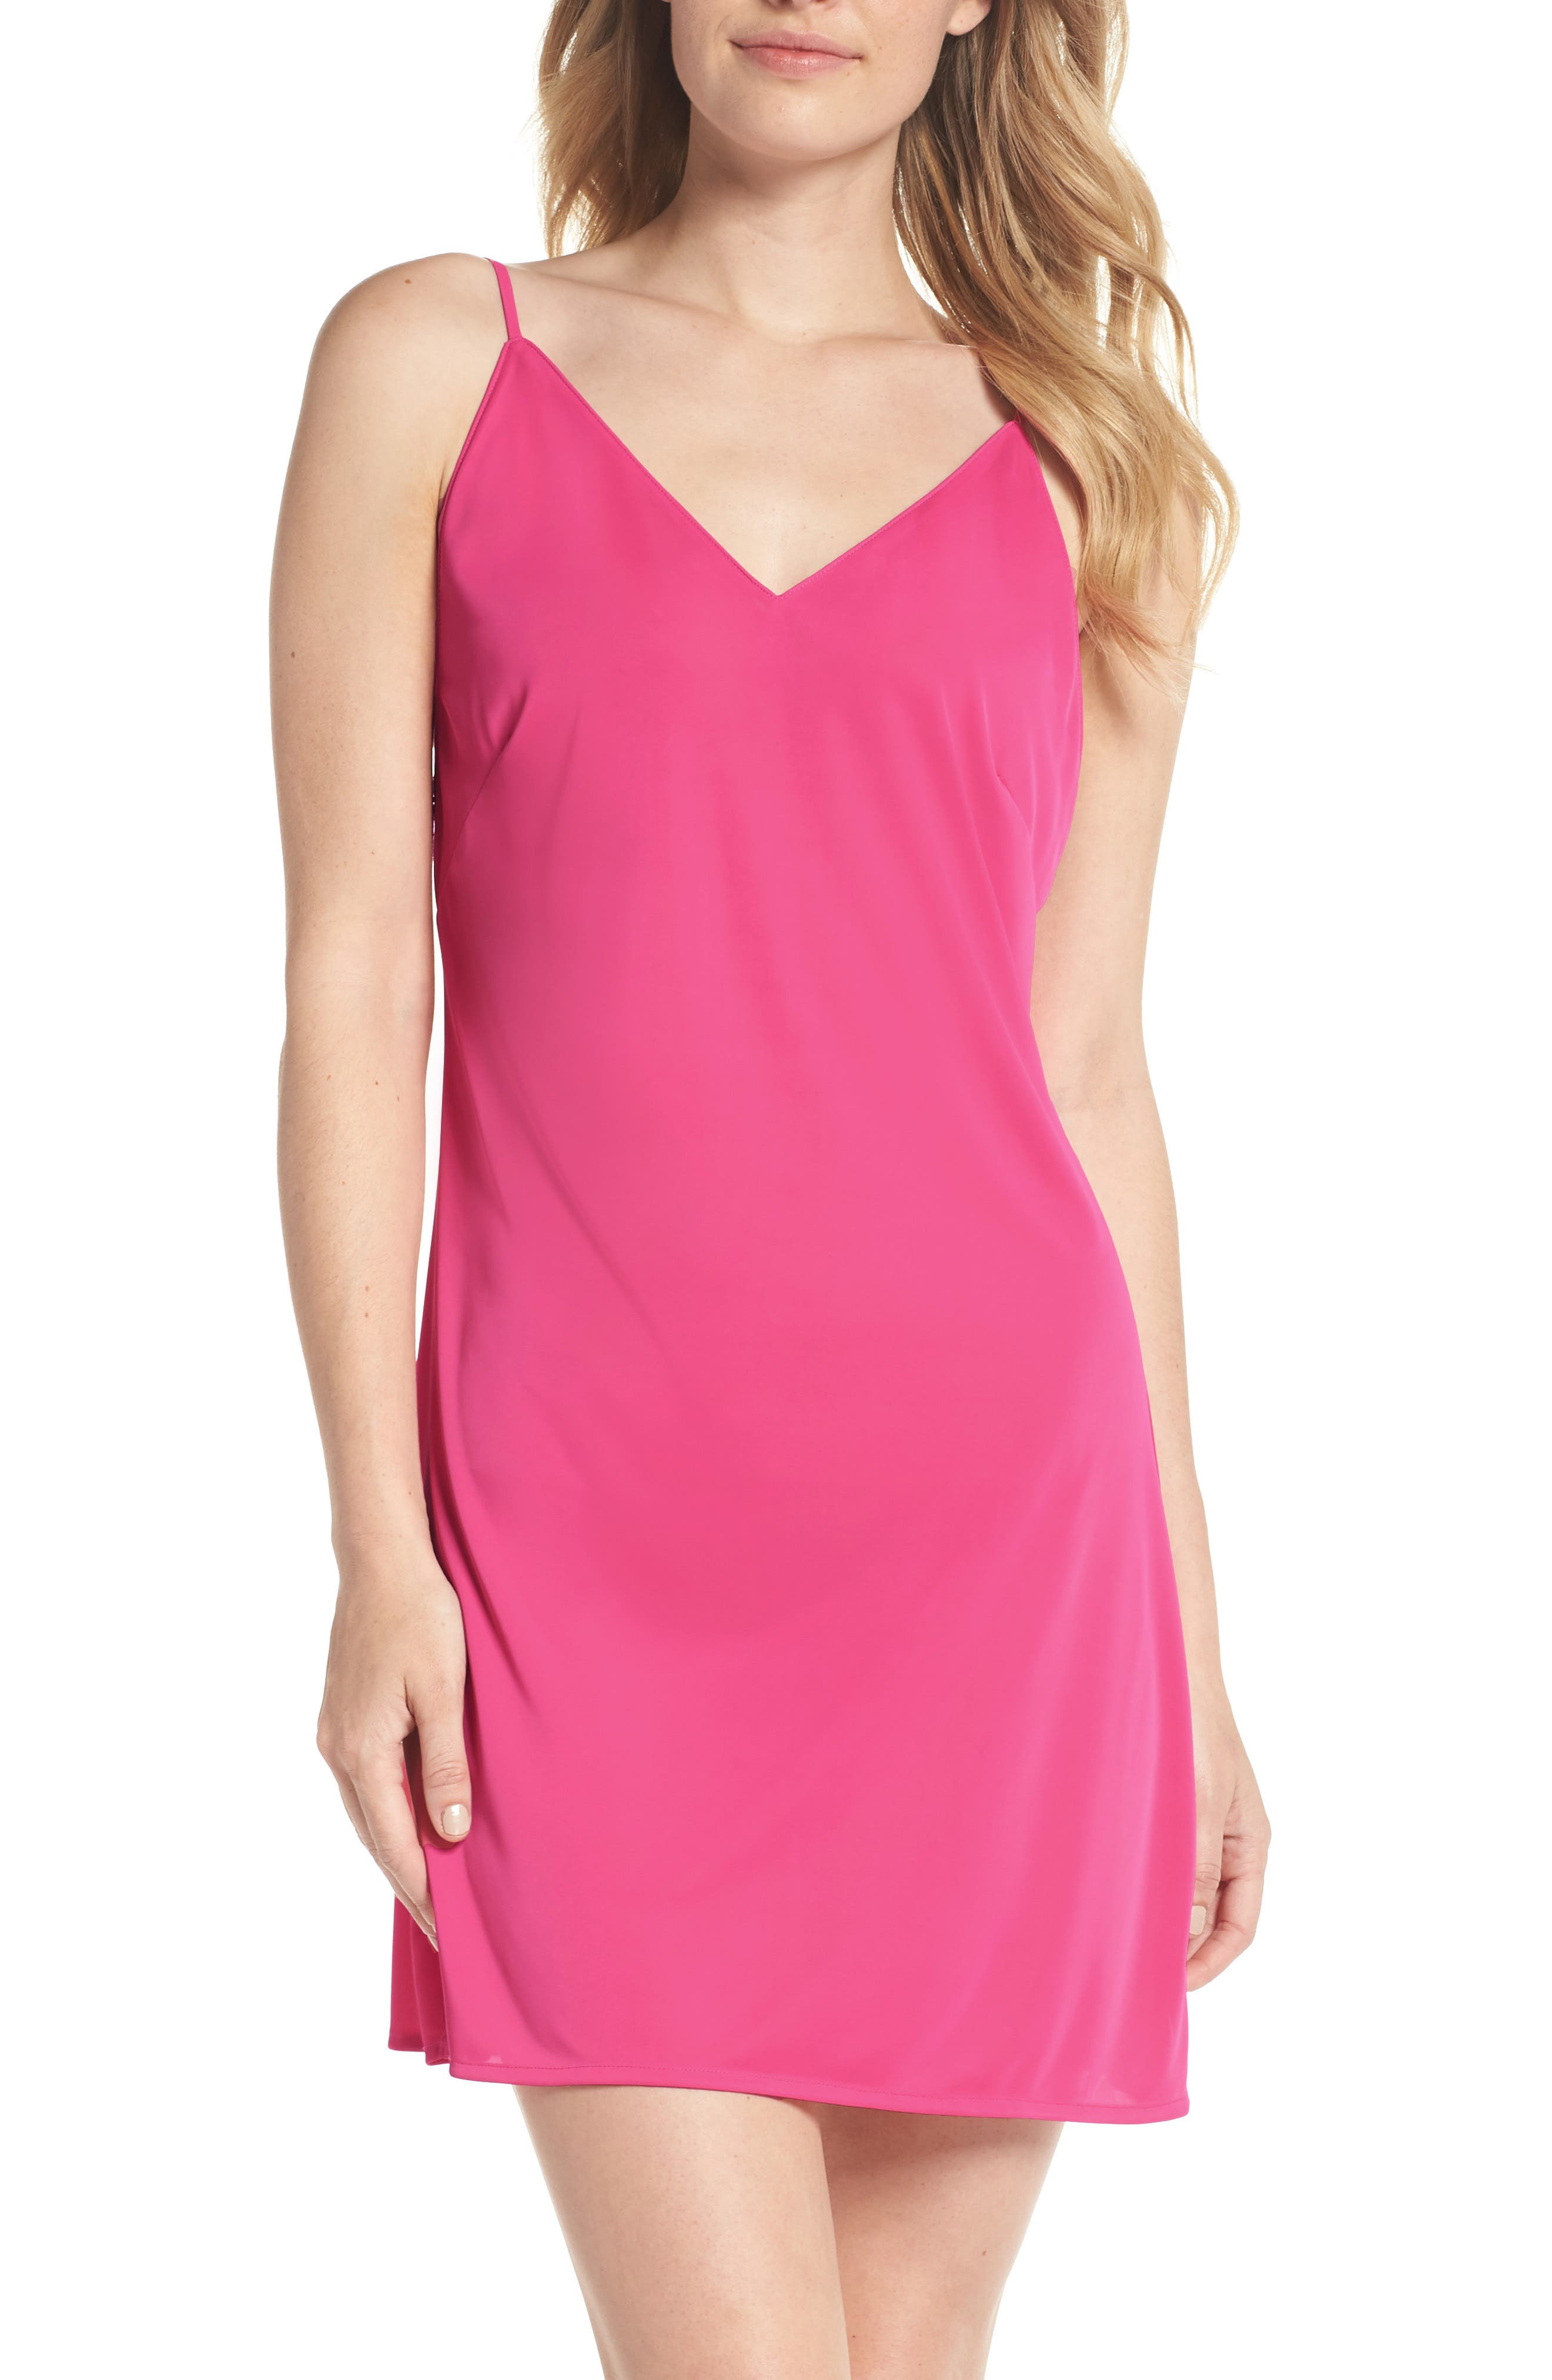 Enchant Chemise,                         Main,                         color, PIN HIBISCUS PINK